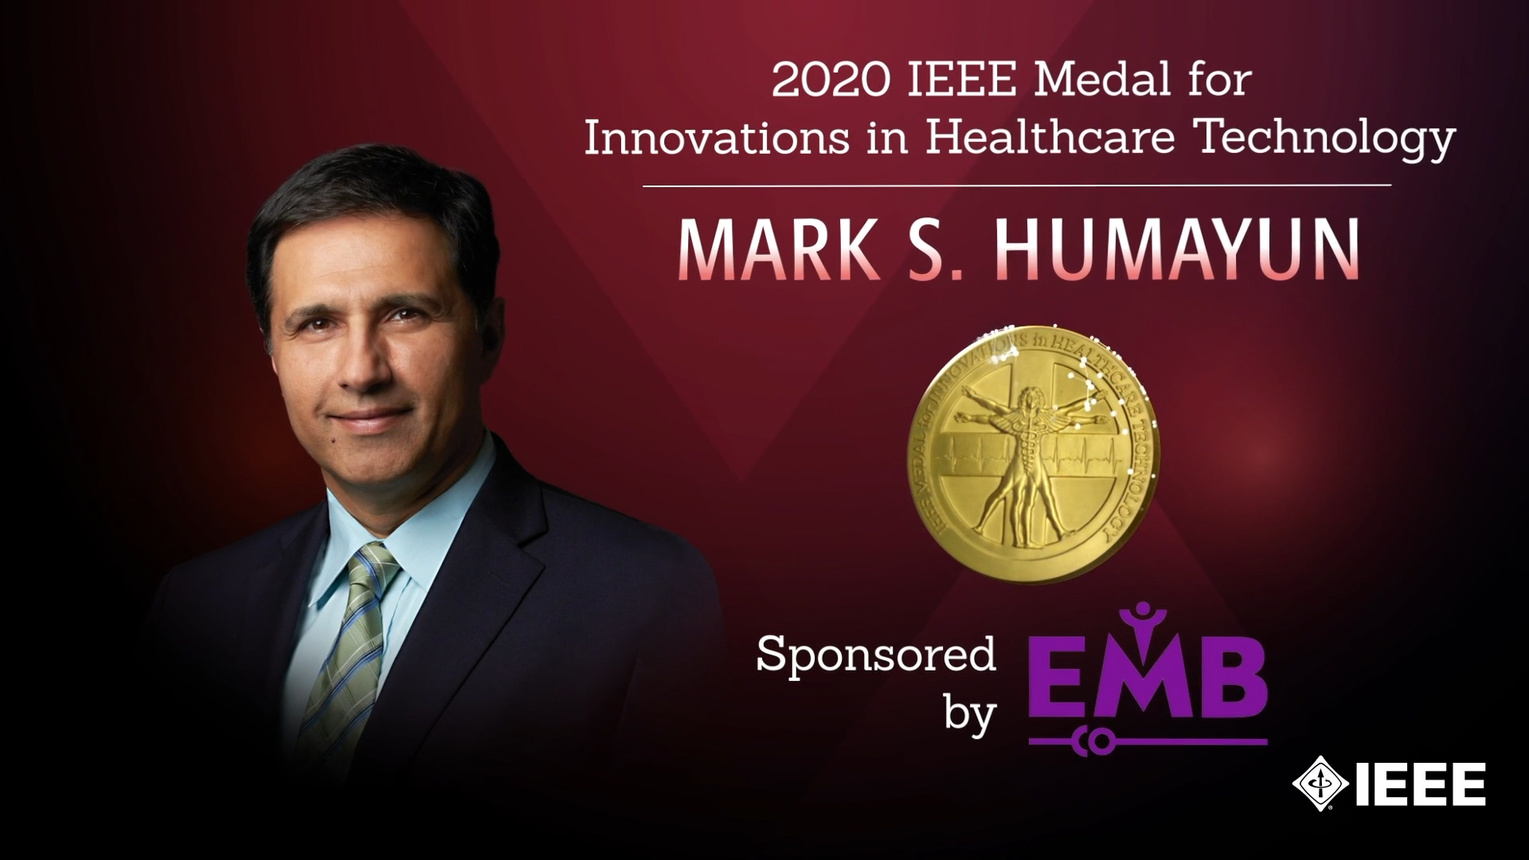 Honors 2020: Mark S. Humayun Wins the IEEE Medal for Innovations in Healthcare Technology